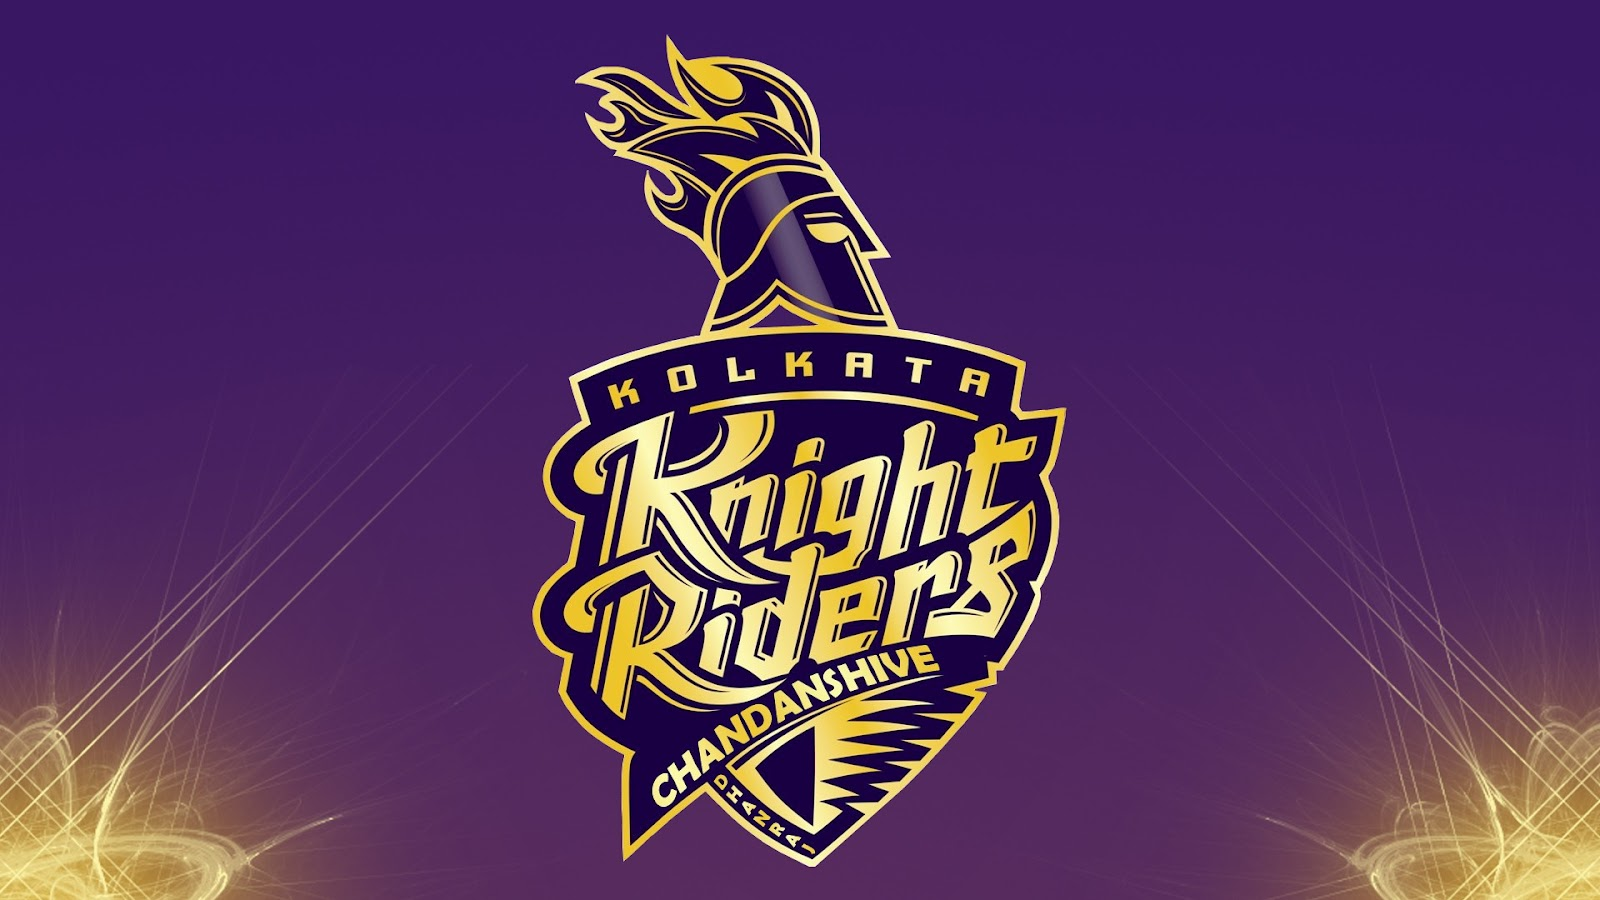 Wallpaper Kkr Wallpapers 2013 Hd